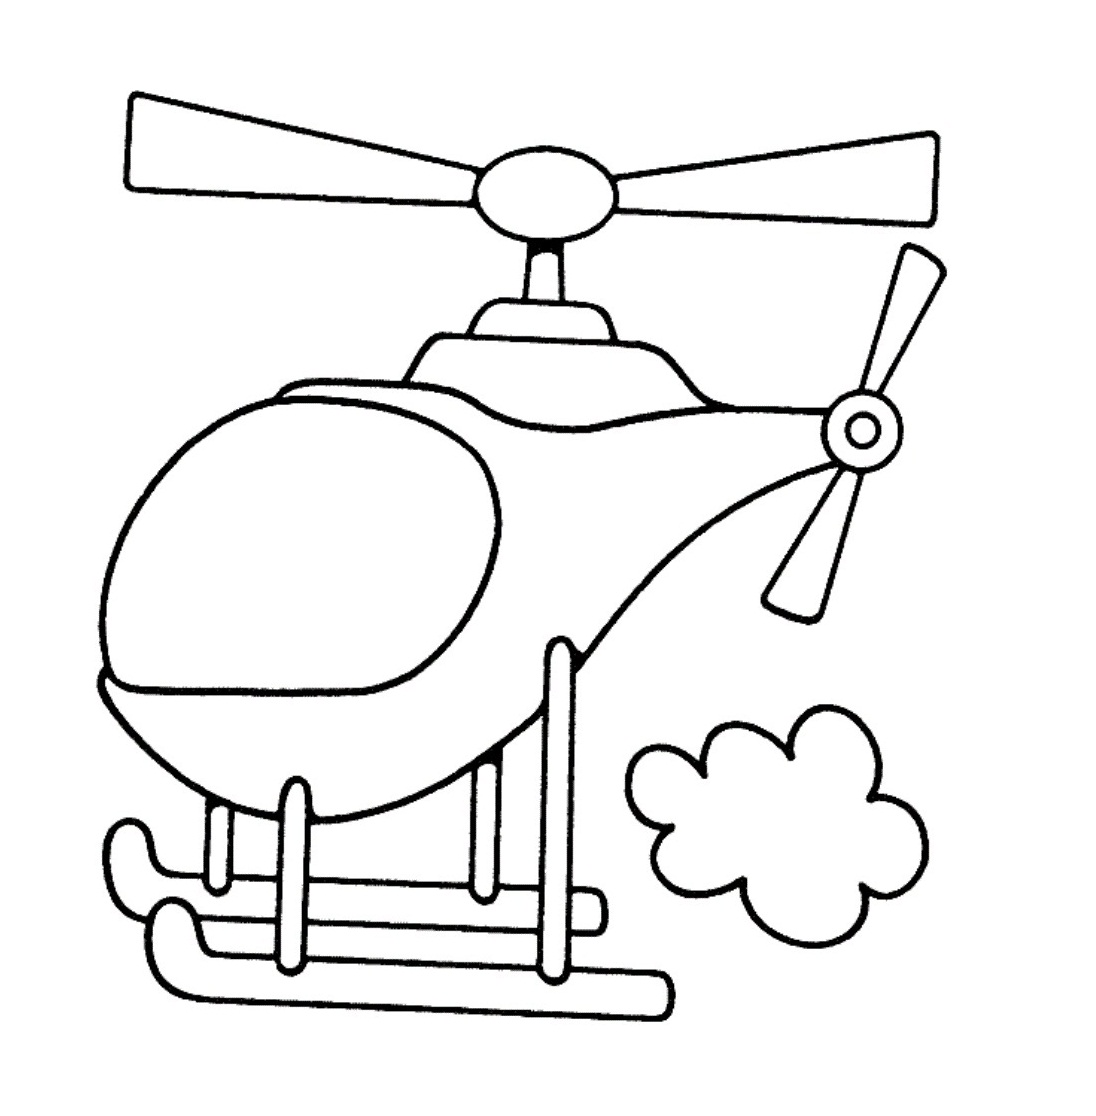 Coloring Pages For Kids Printable : Free printable helicopter coloring pages for kids